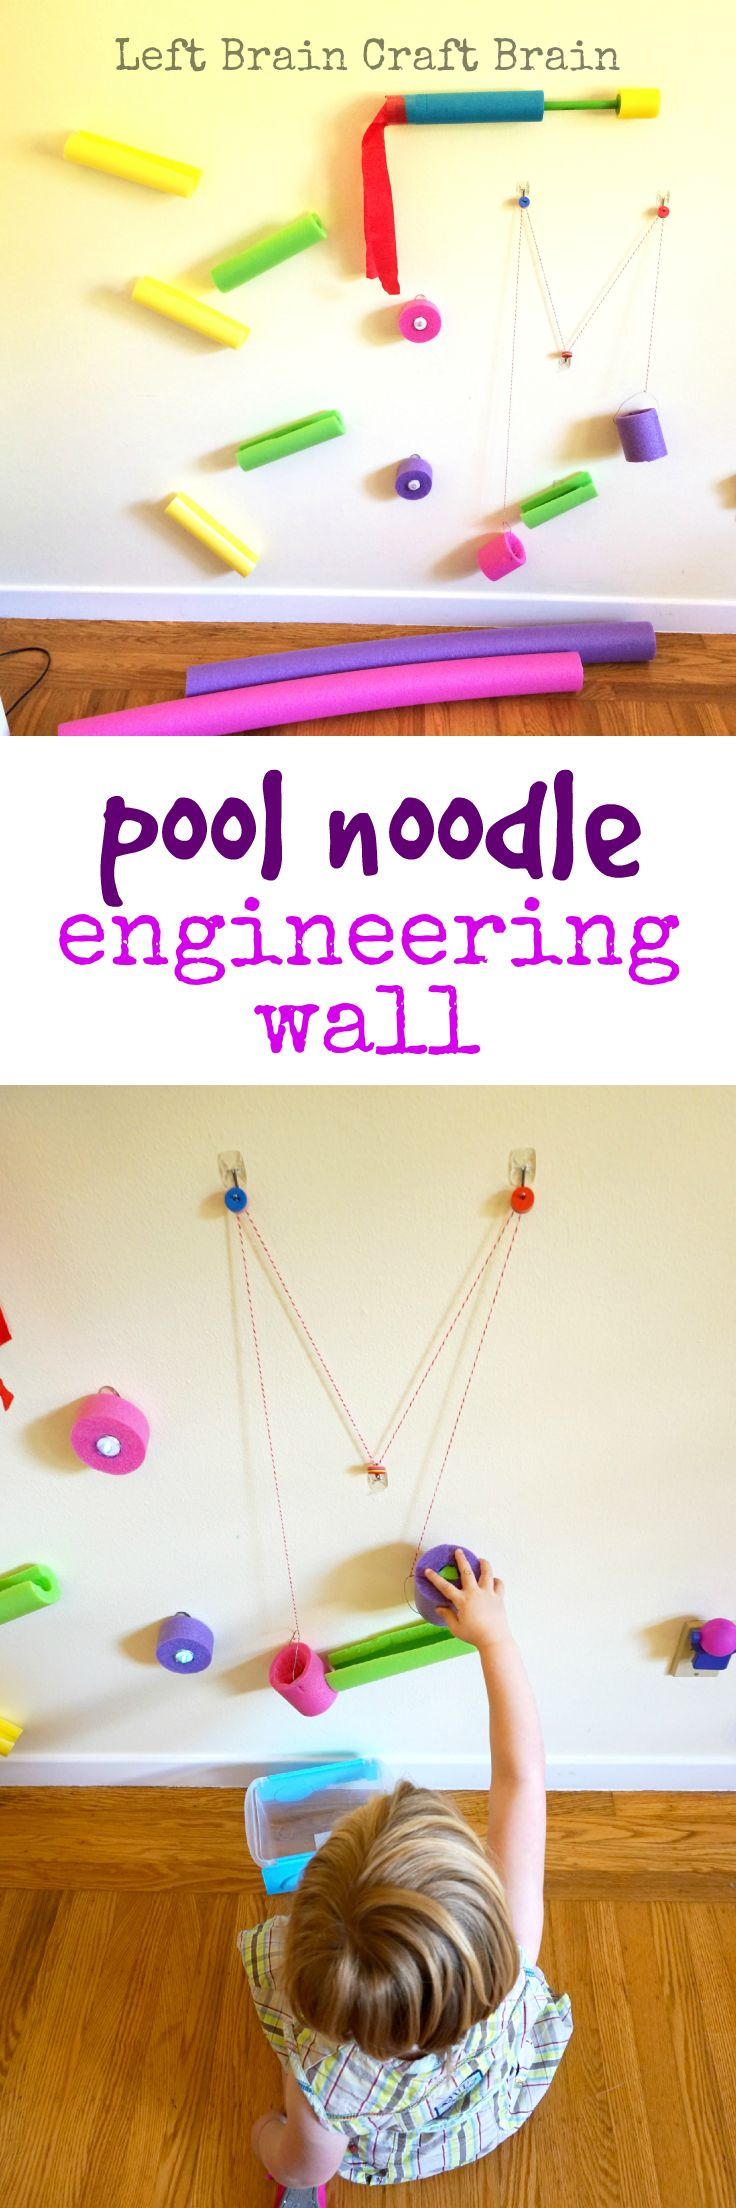 Inspire your young engineers with this fun pool noodle engineering wall. #ProjectAmazing #ad